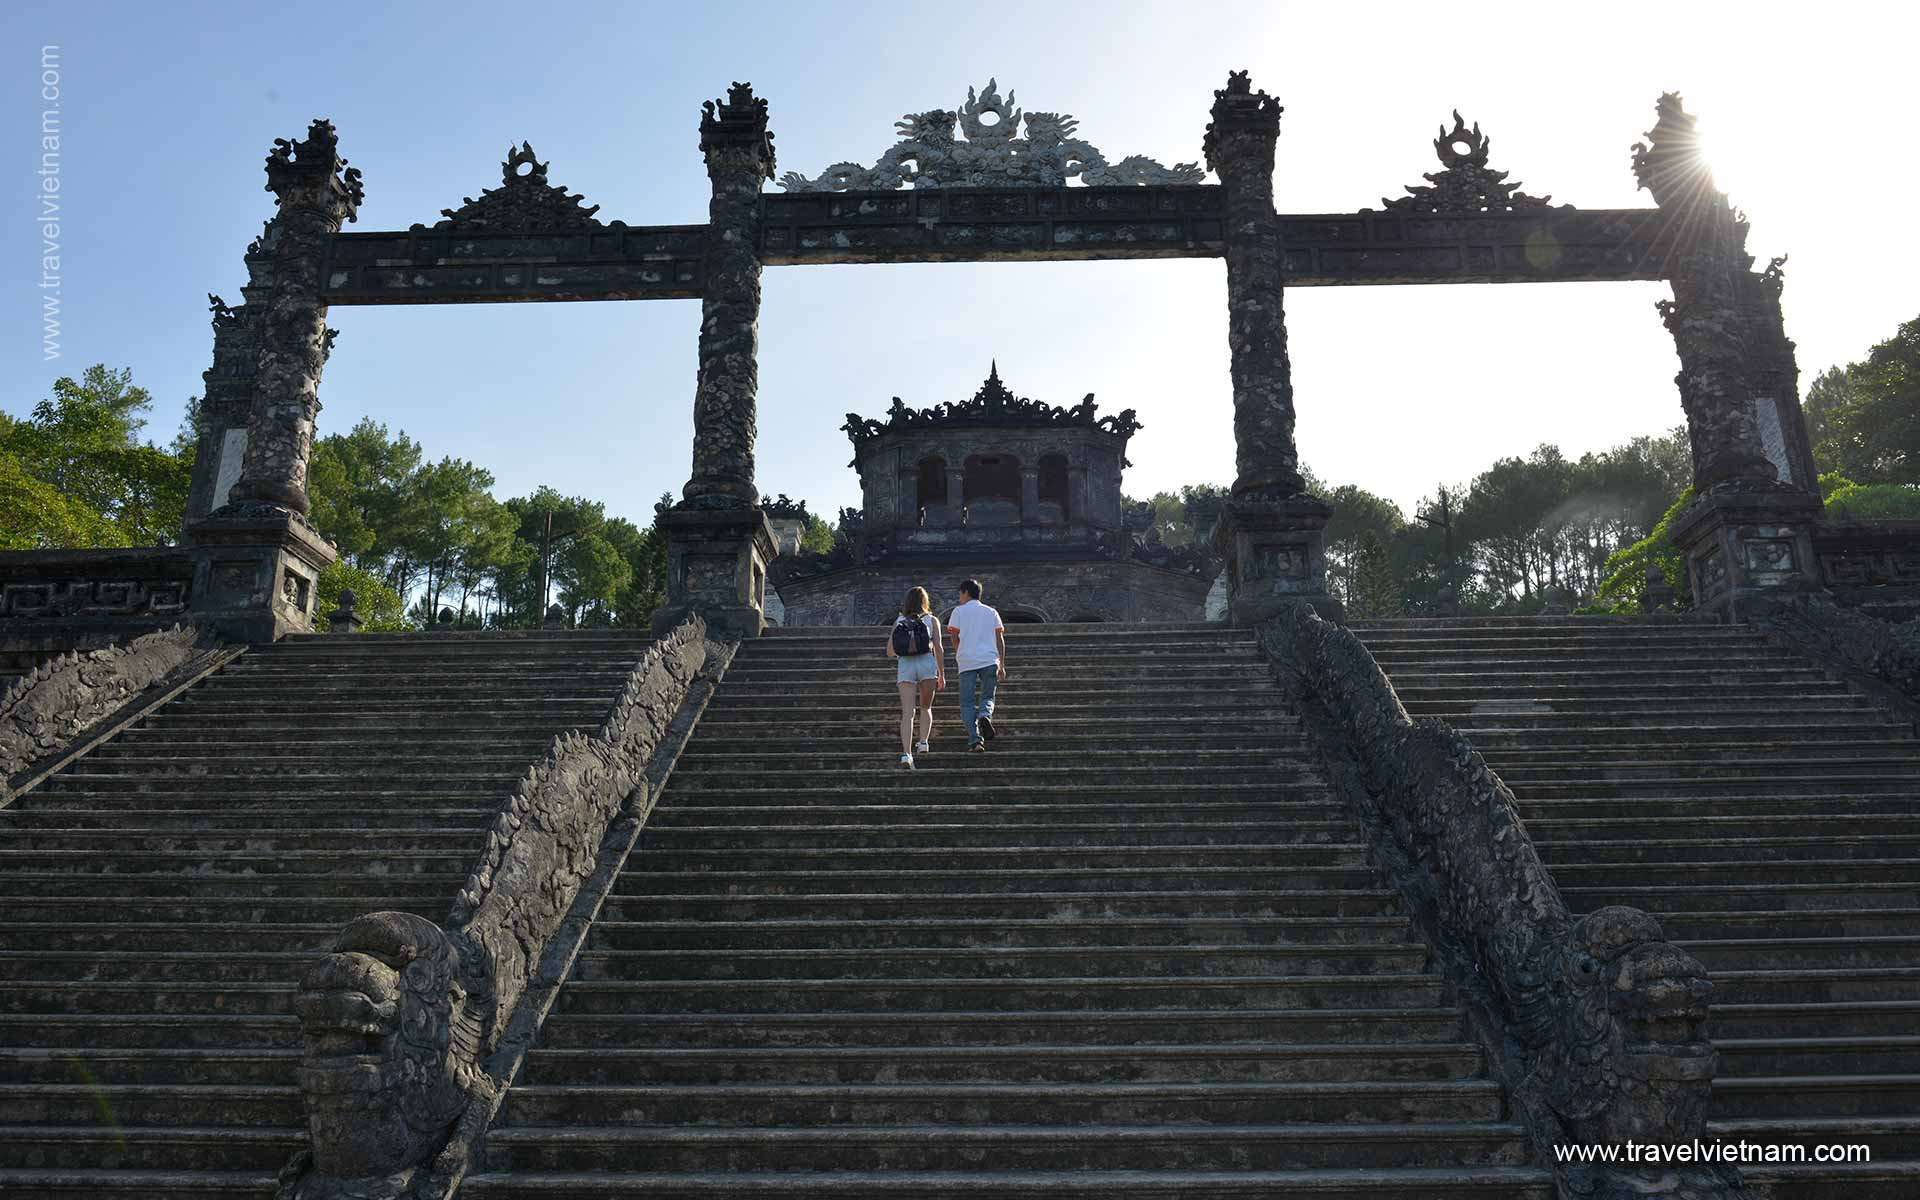 Visiting Cultural sites and discover Vietnam history of 4 thousand years